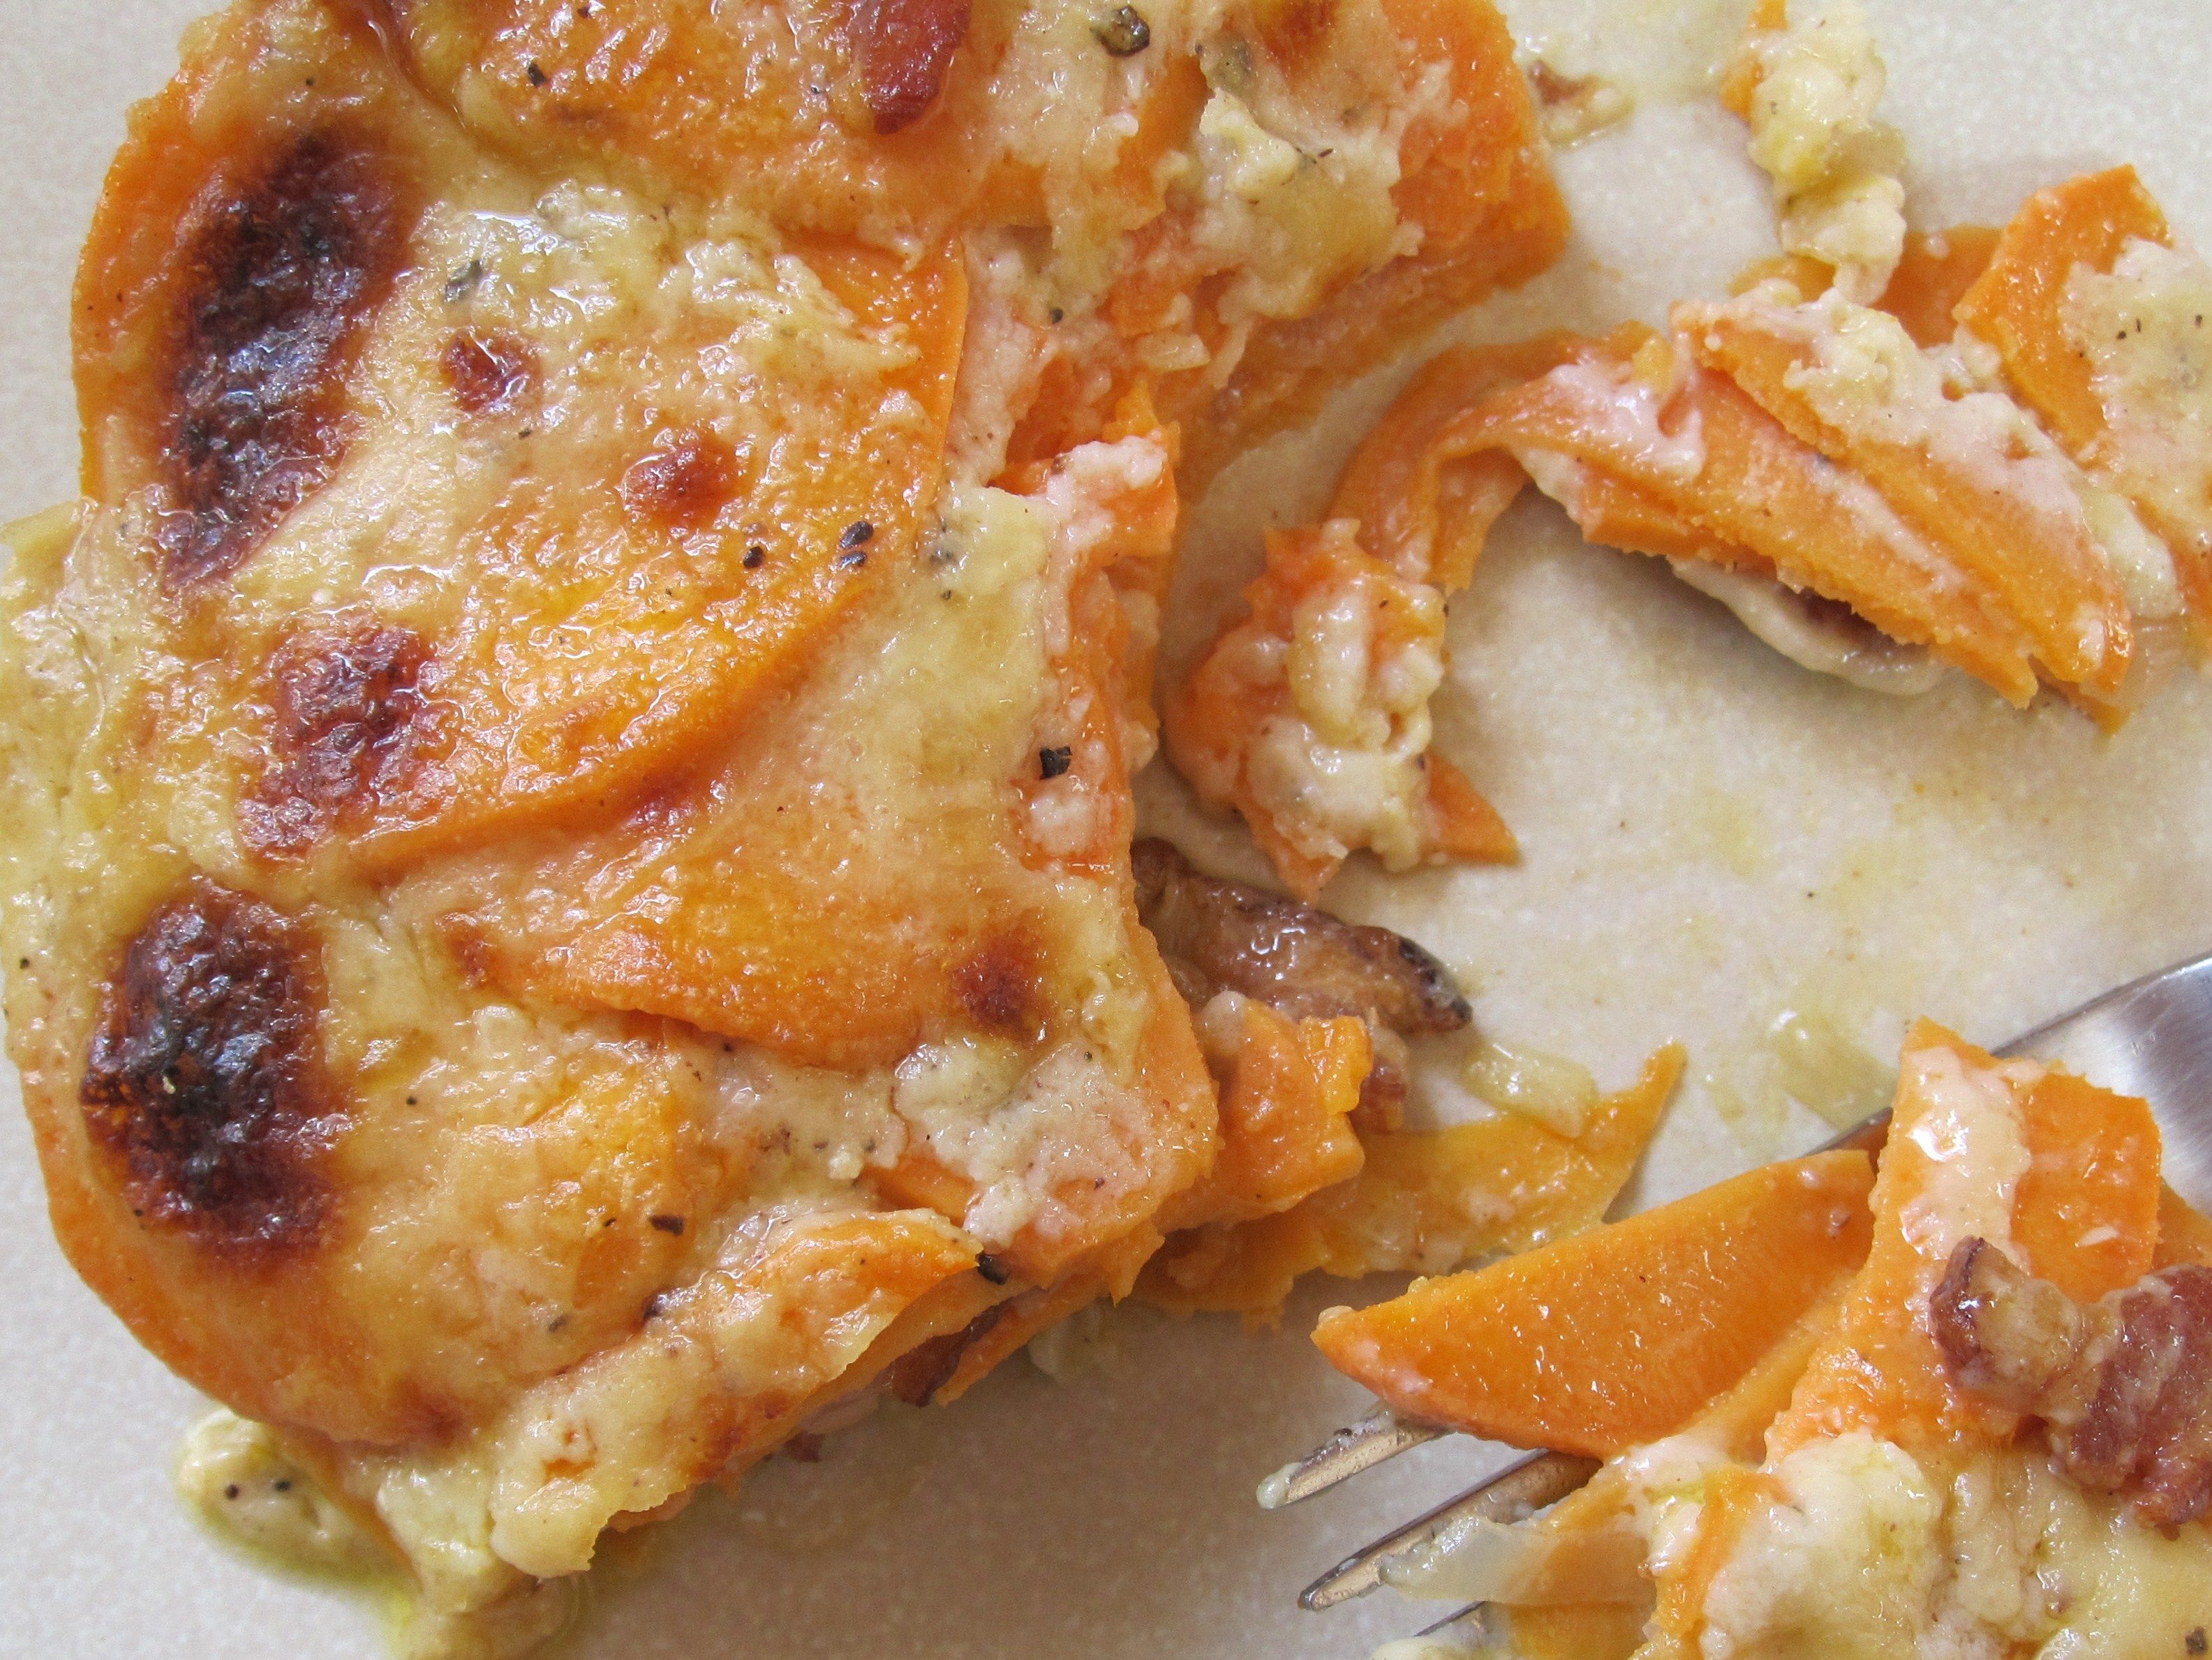 ... gratin gratins turnip and sweet potato gratin with sweet cheesy gratin